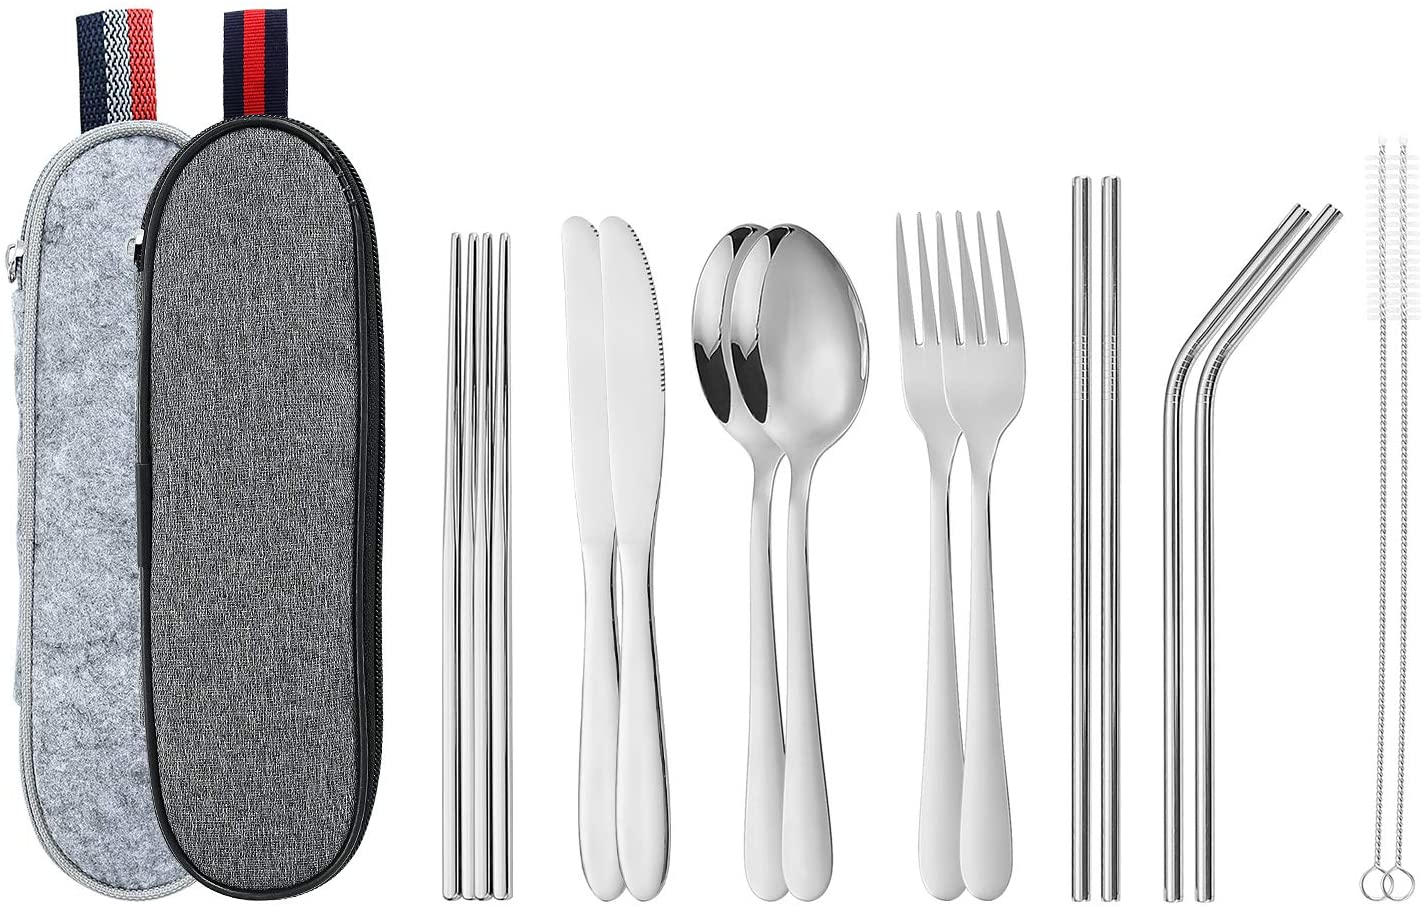 16 Pieces Portable Utensils, Travel Camping Cutlery Stainless Steel Flatware set, including Knife Fork Spoon Chopsticks Straws Cleaning Brush wigh 2 color Portable Case (2 Set Silver)